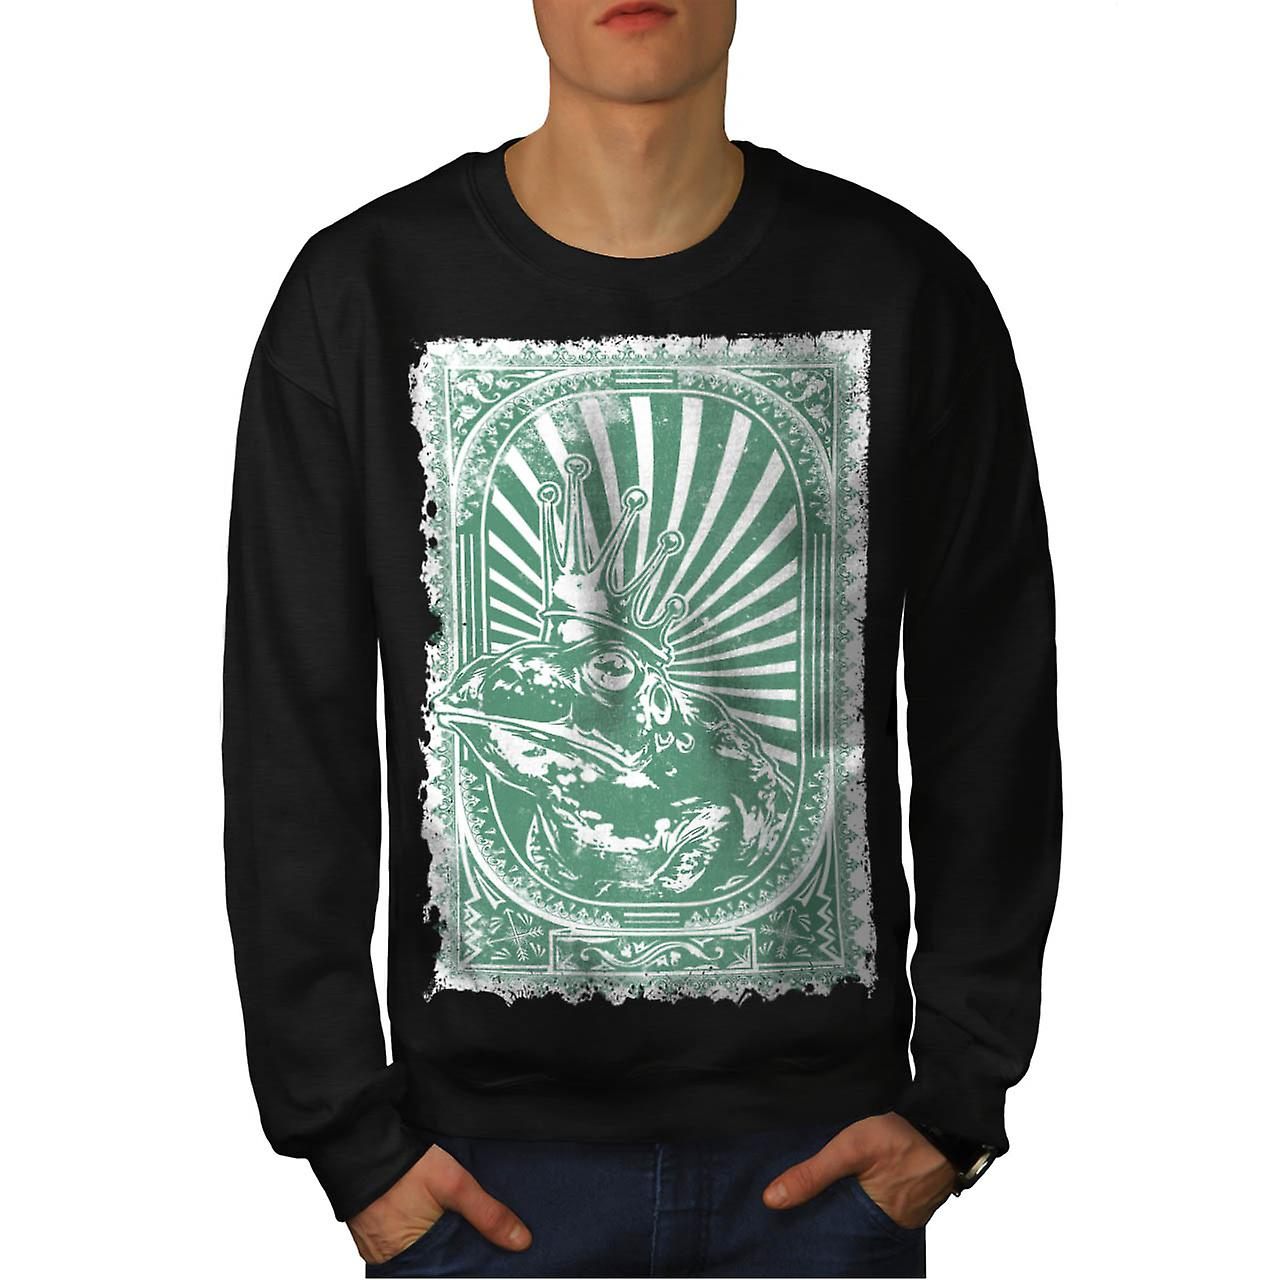 Prince Frog Crown Eye Wise Toad Men Black Sweatshirt | Wellcoda